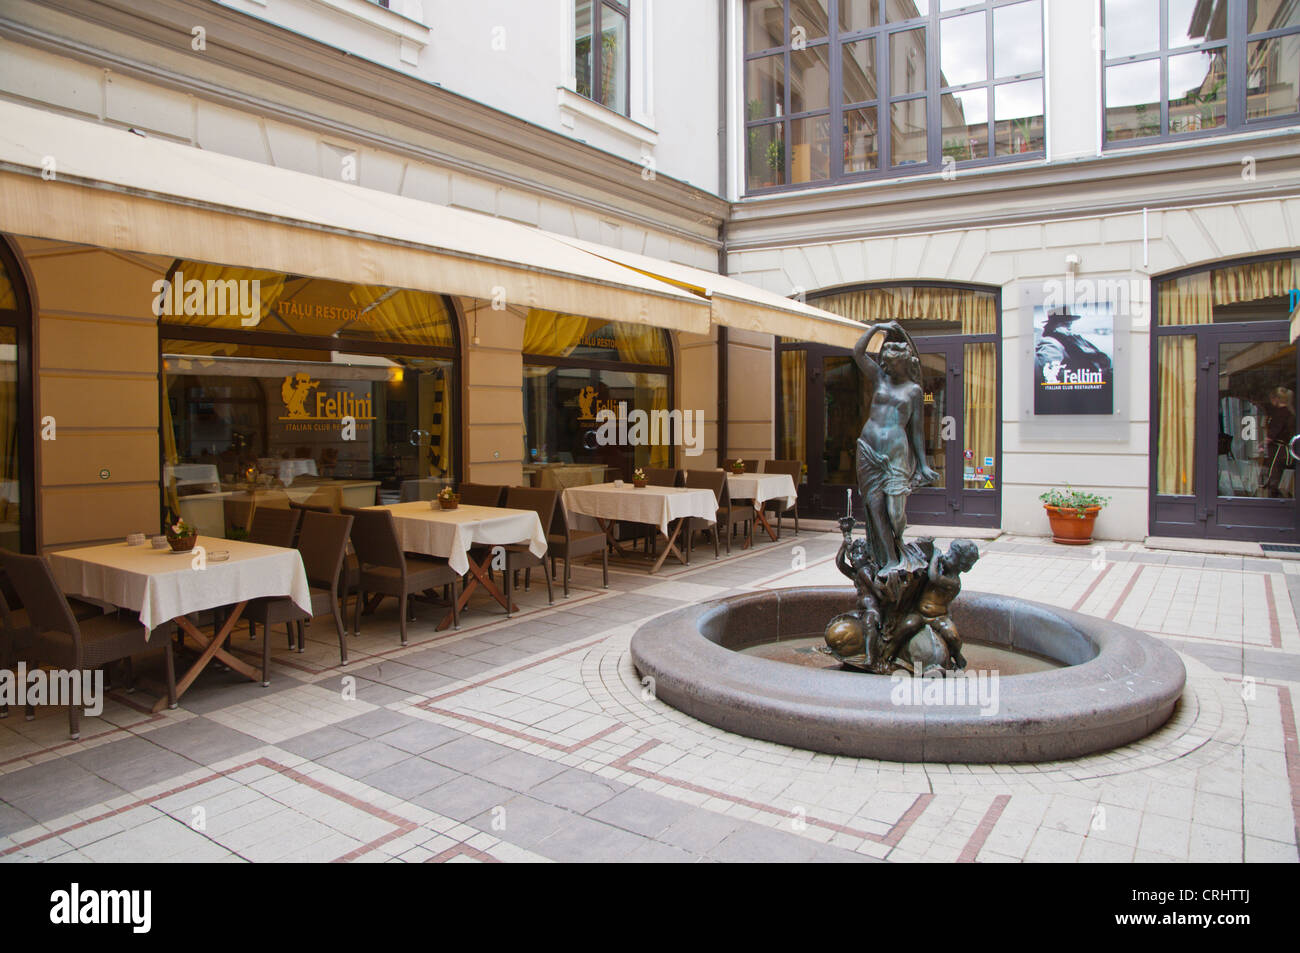 Restaurant Fellini exterior in Berga bazars converted shopping and hotel complex new town Riga Latvia Europe - Stock Image